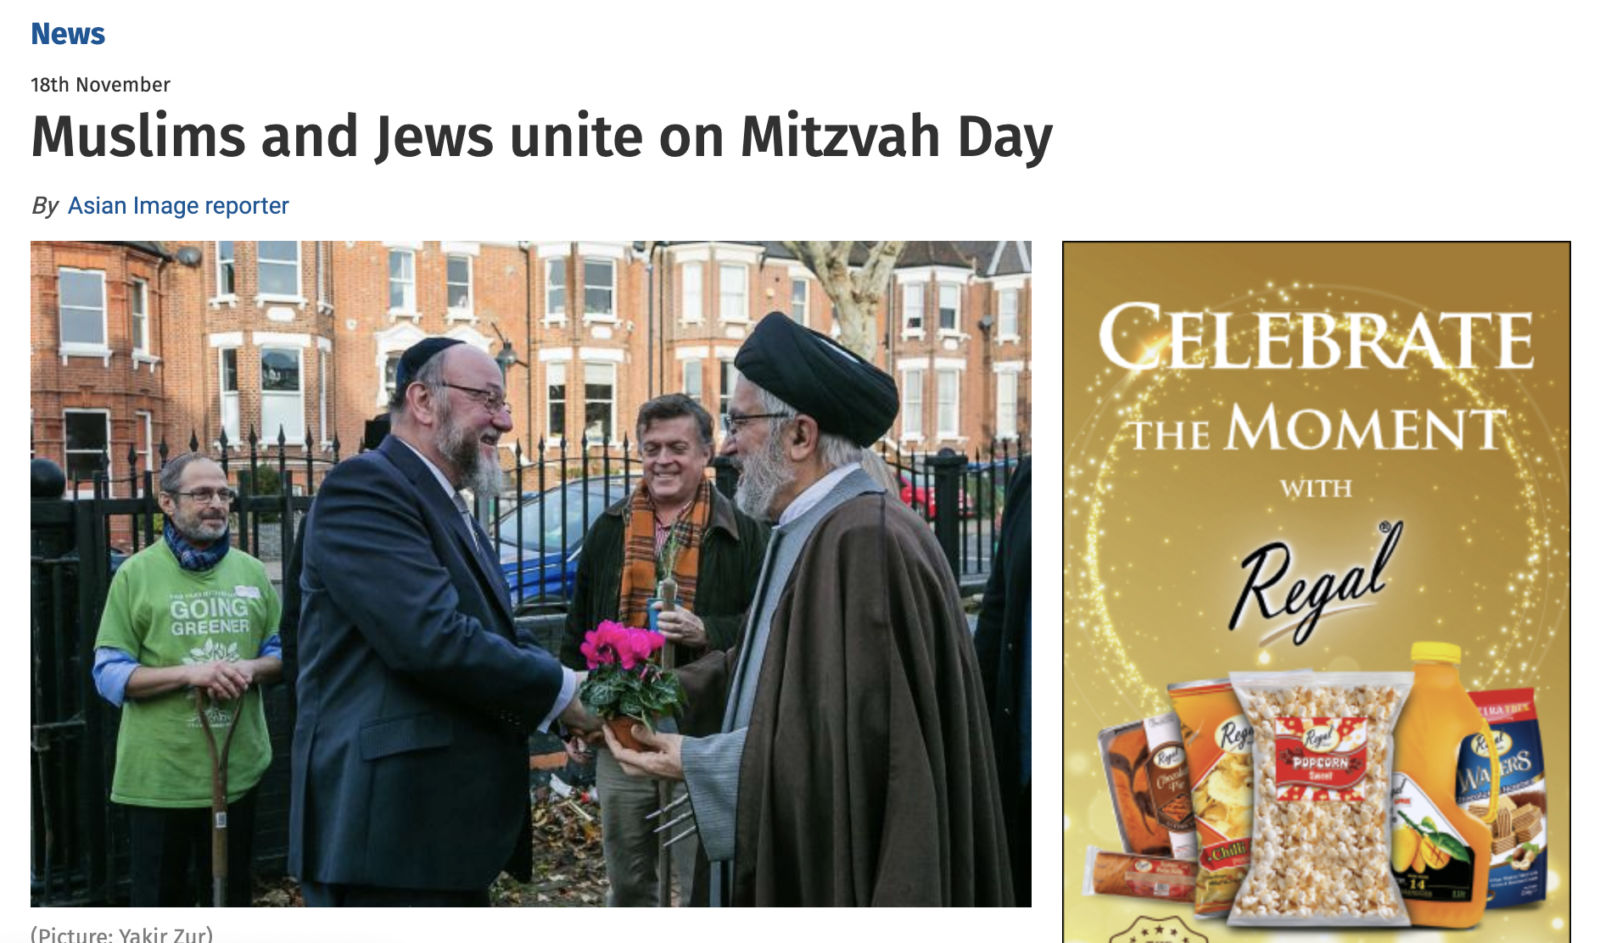 Lengthy Mitzvah Day feature in Asian Image